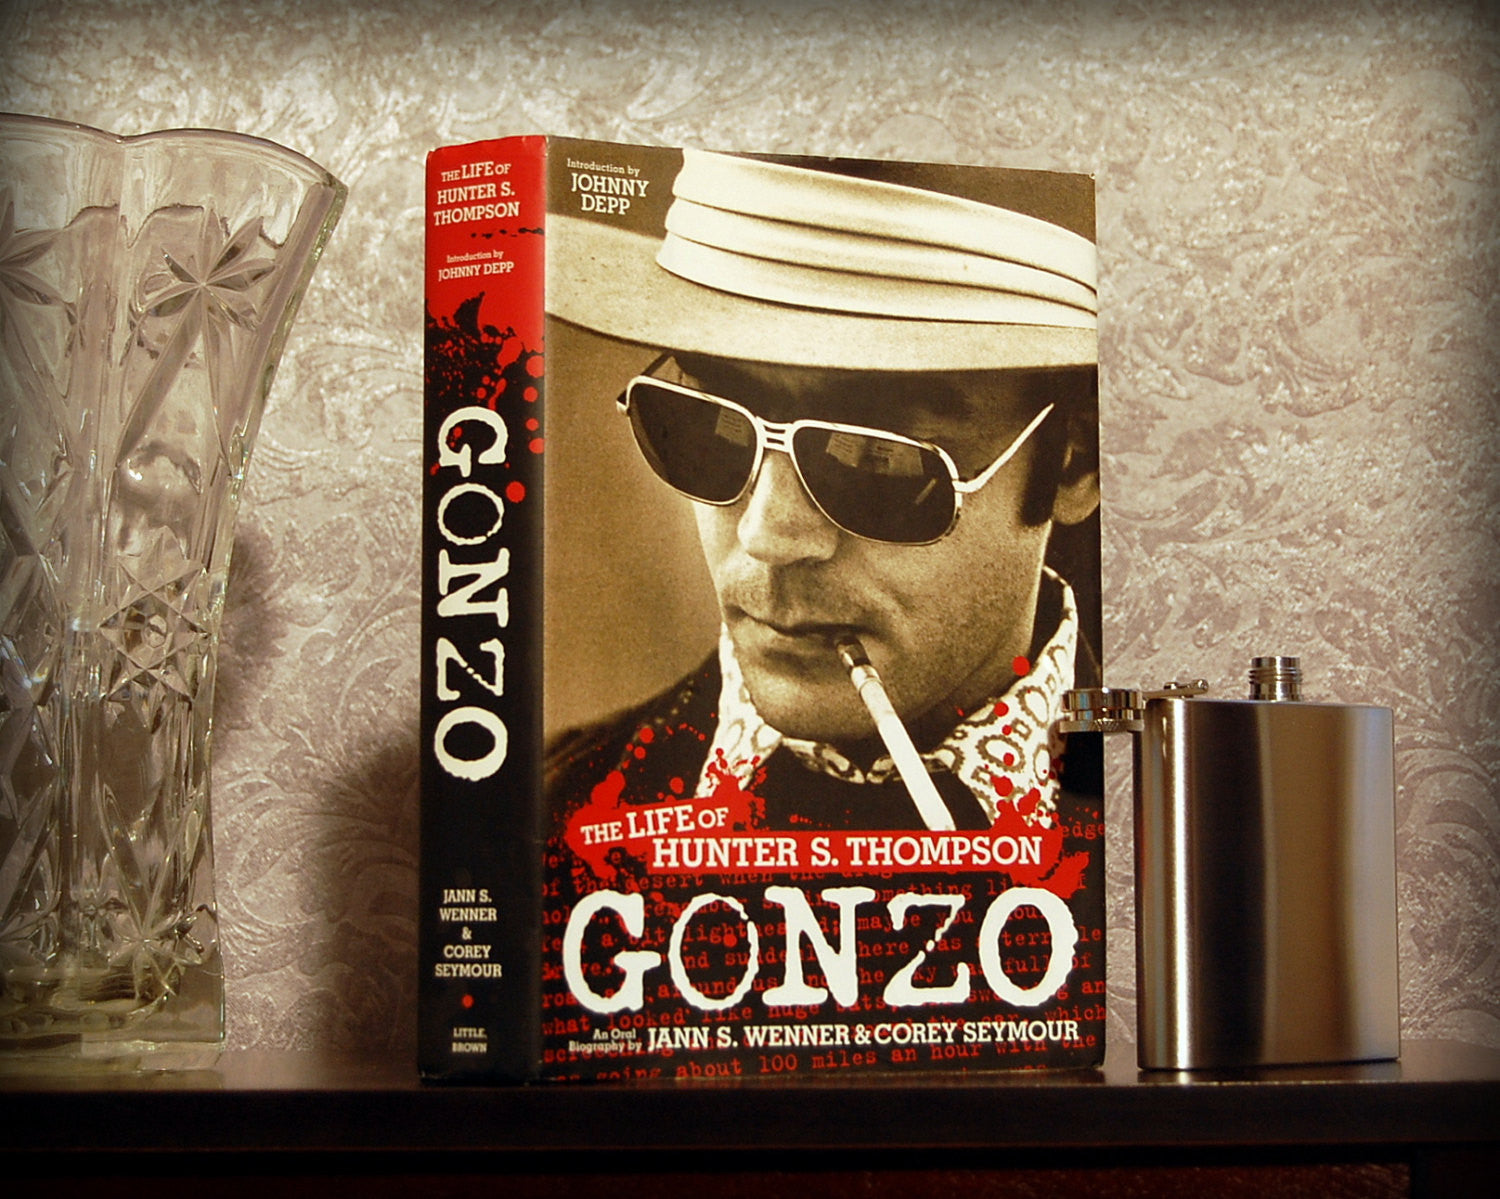 Gonzo: The Life of Hunter S. Thompson / Wenner & Seymour - Secret Safe Books  - 1